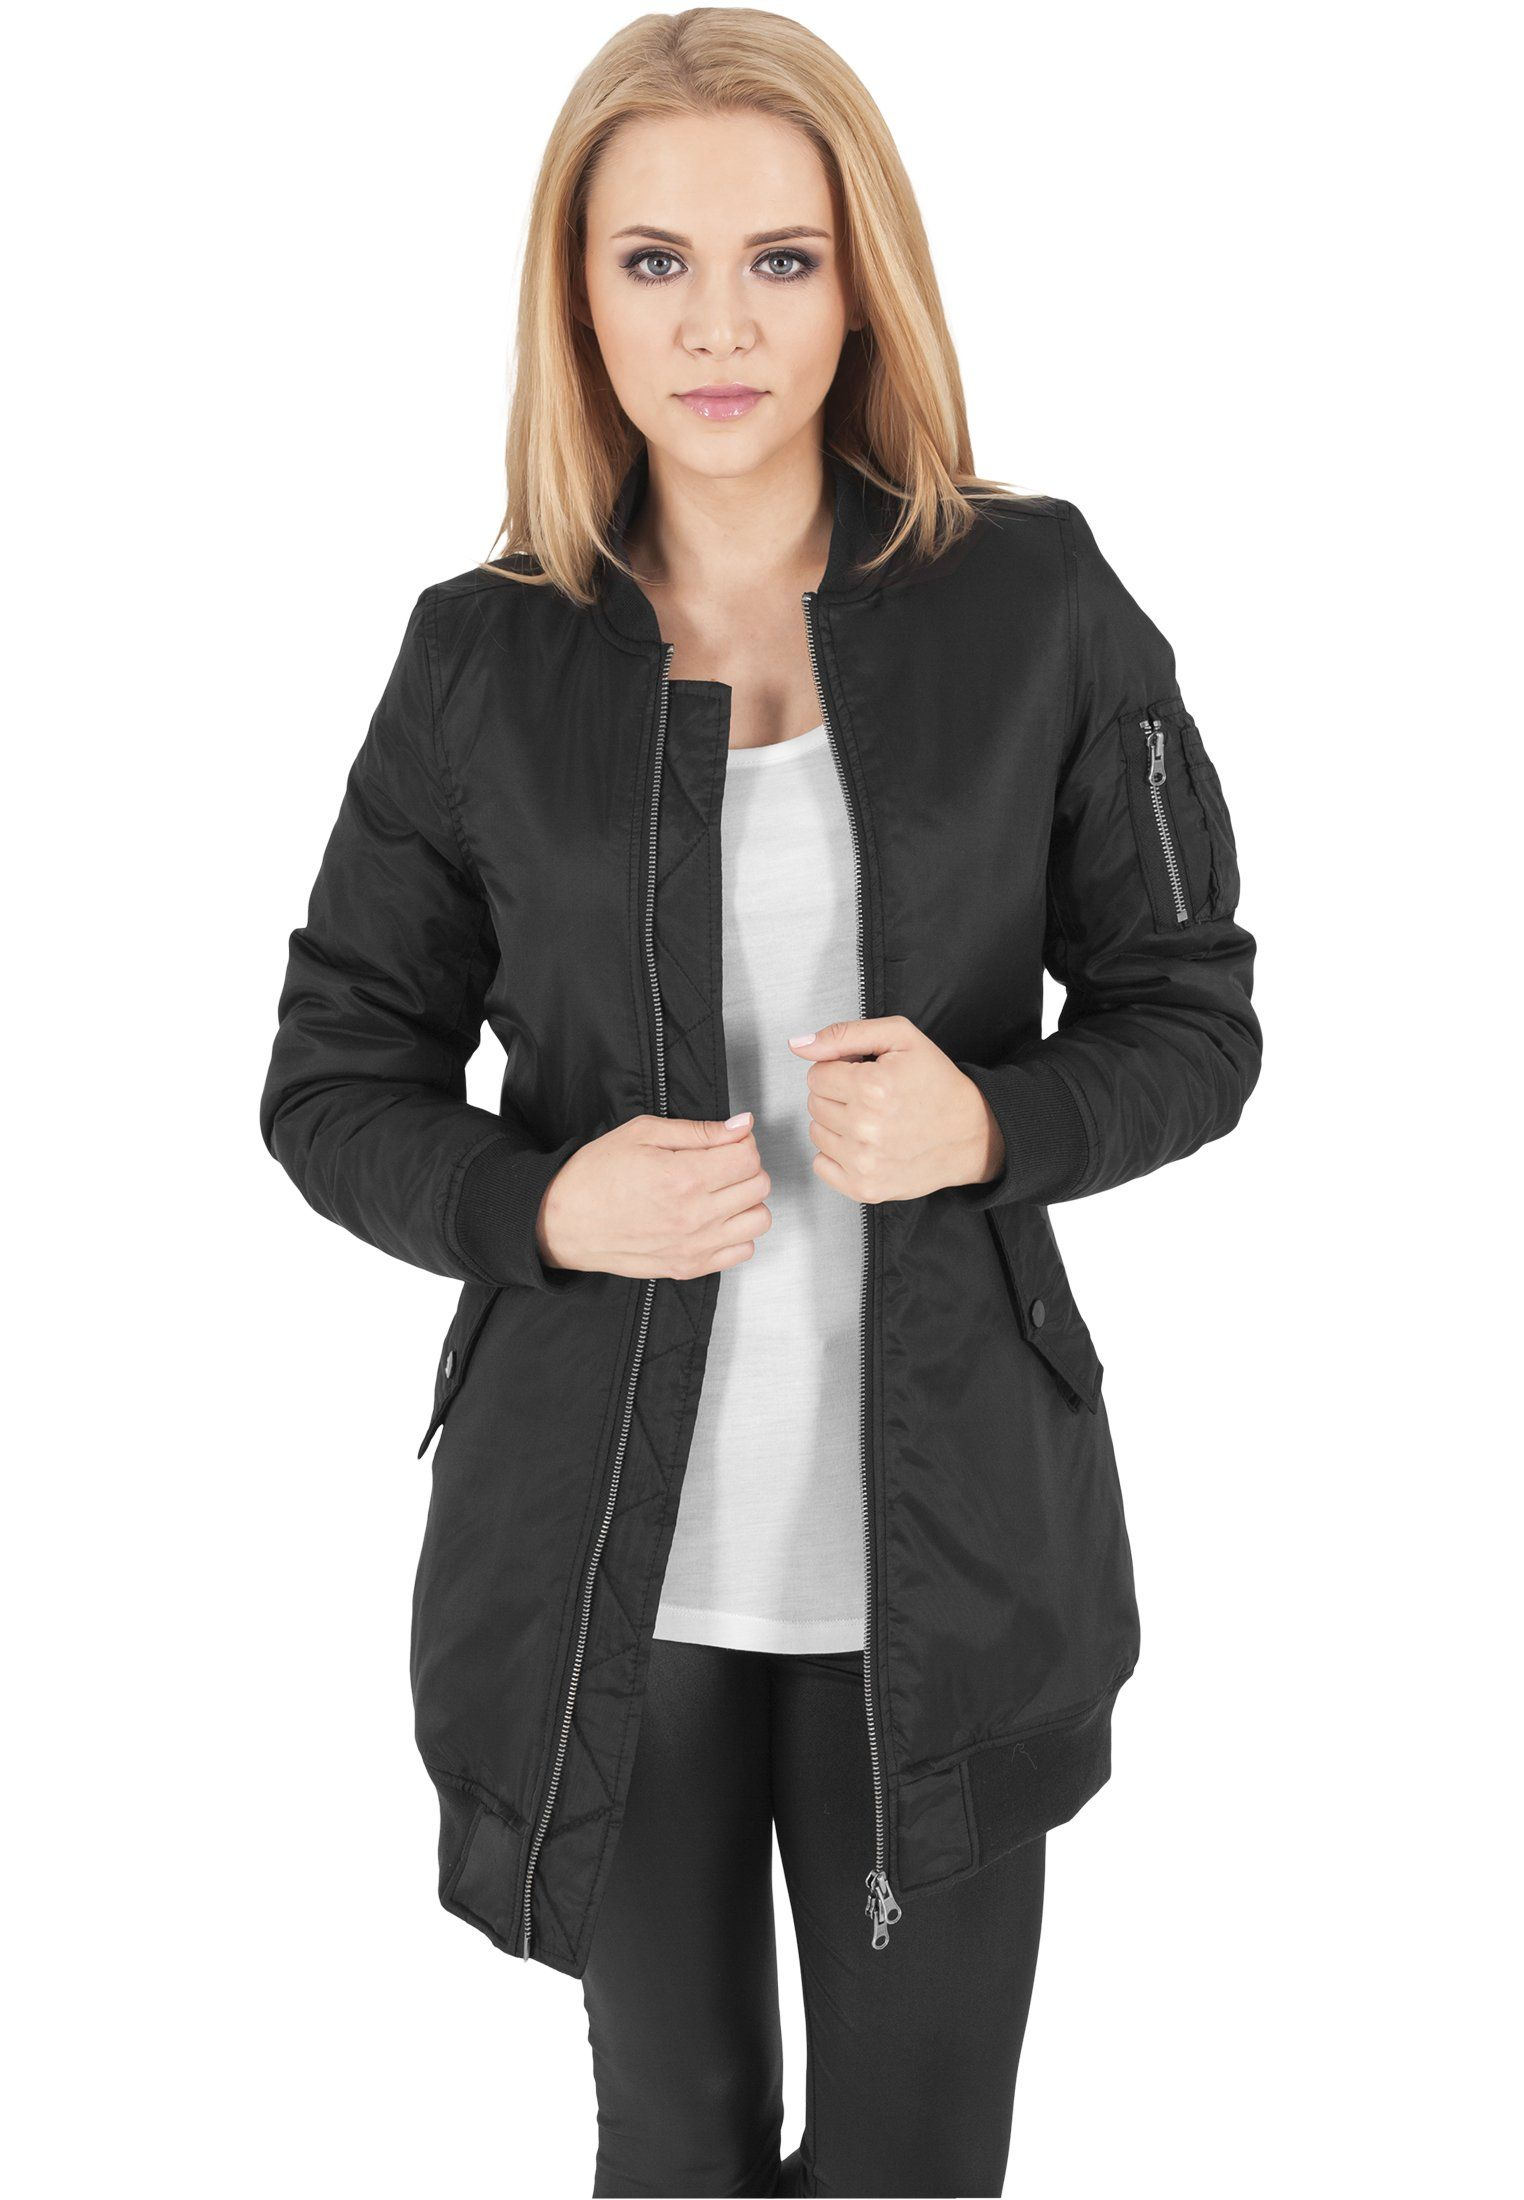 Urban Classics Ladies Long Bomber Jacket Black Xl Read More Reviews Of The Product By Visiting The Lin Long Bomber Jacket Jackets For Women Bomber Jacket [ 2200 x 1524 Pixel ]